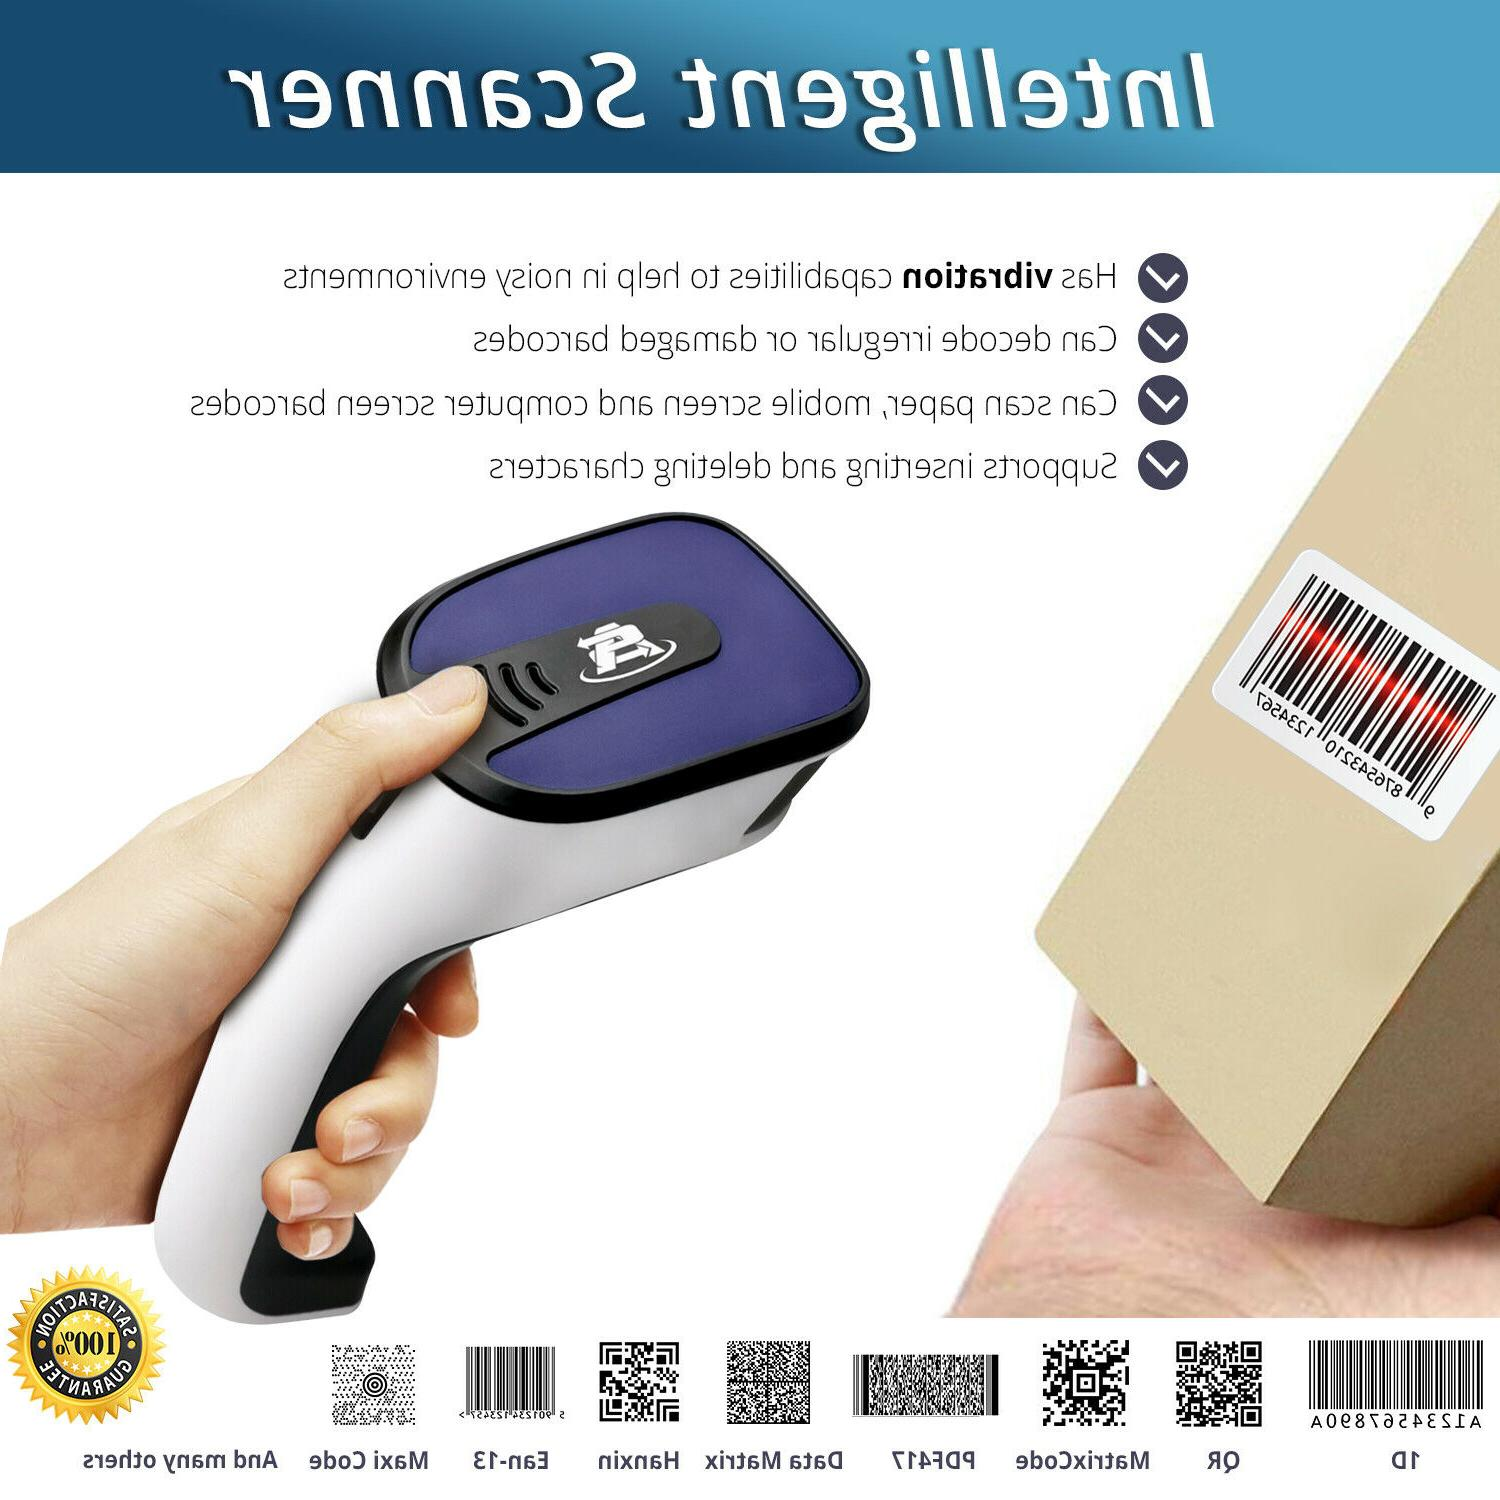 1D/2D Wireless Bluetooth Scanner: QR